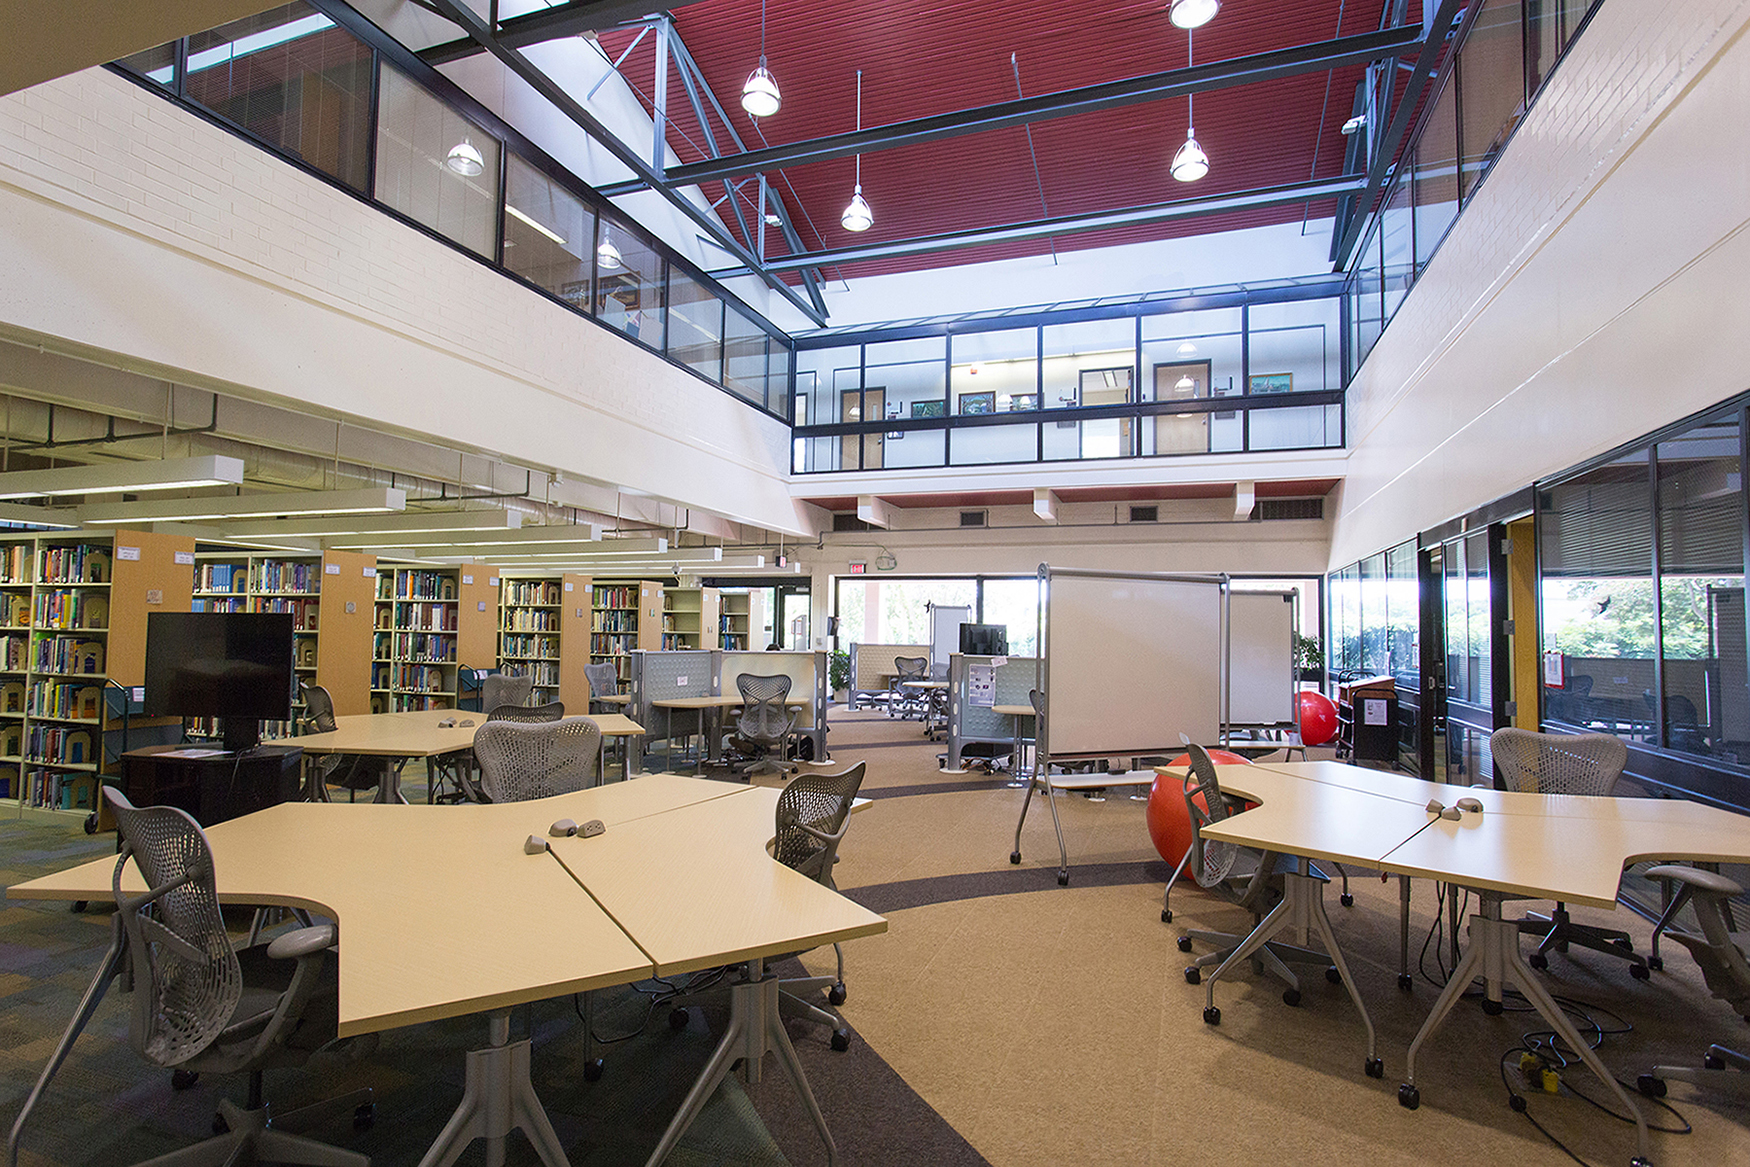 A reading room with bookstacks, desks, and whiteboards